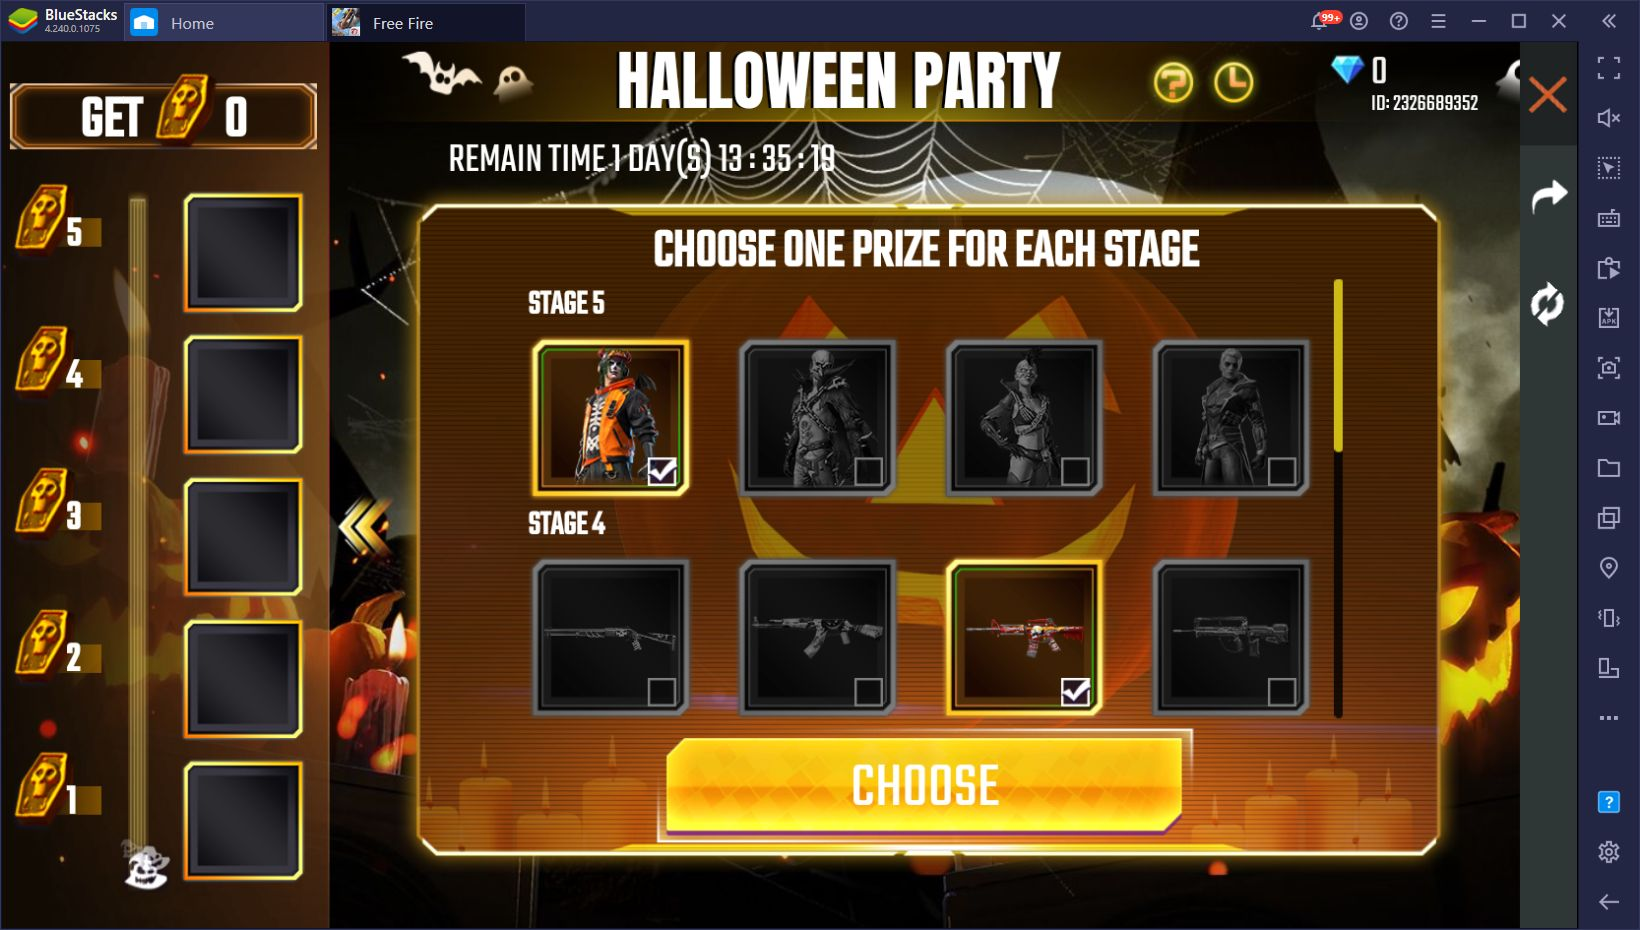 Free Fire Halloweek Guide – All the Details About the Halloween 2020 Celebration